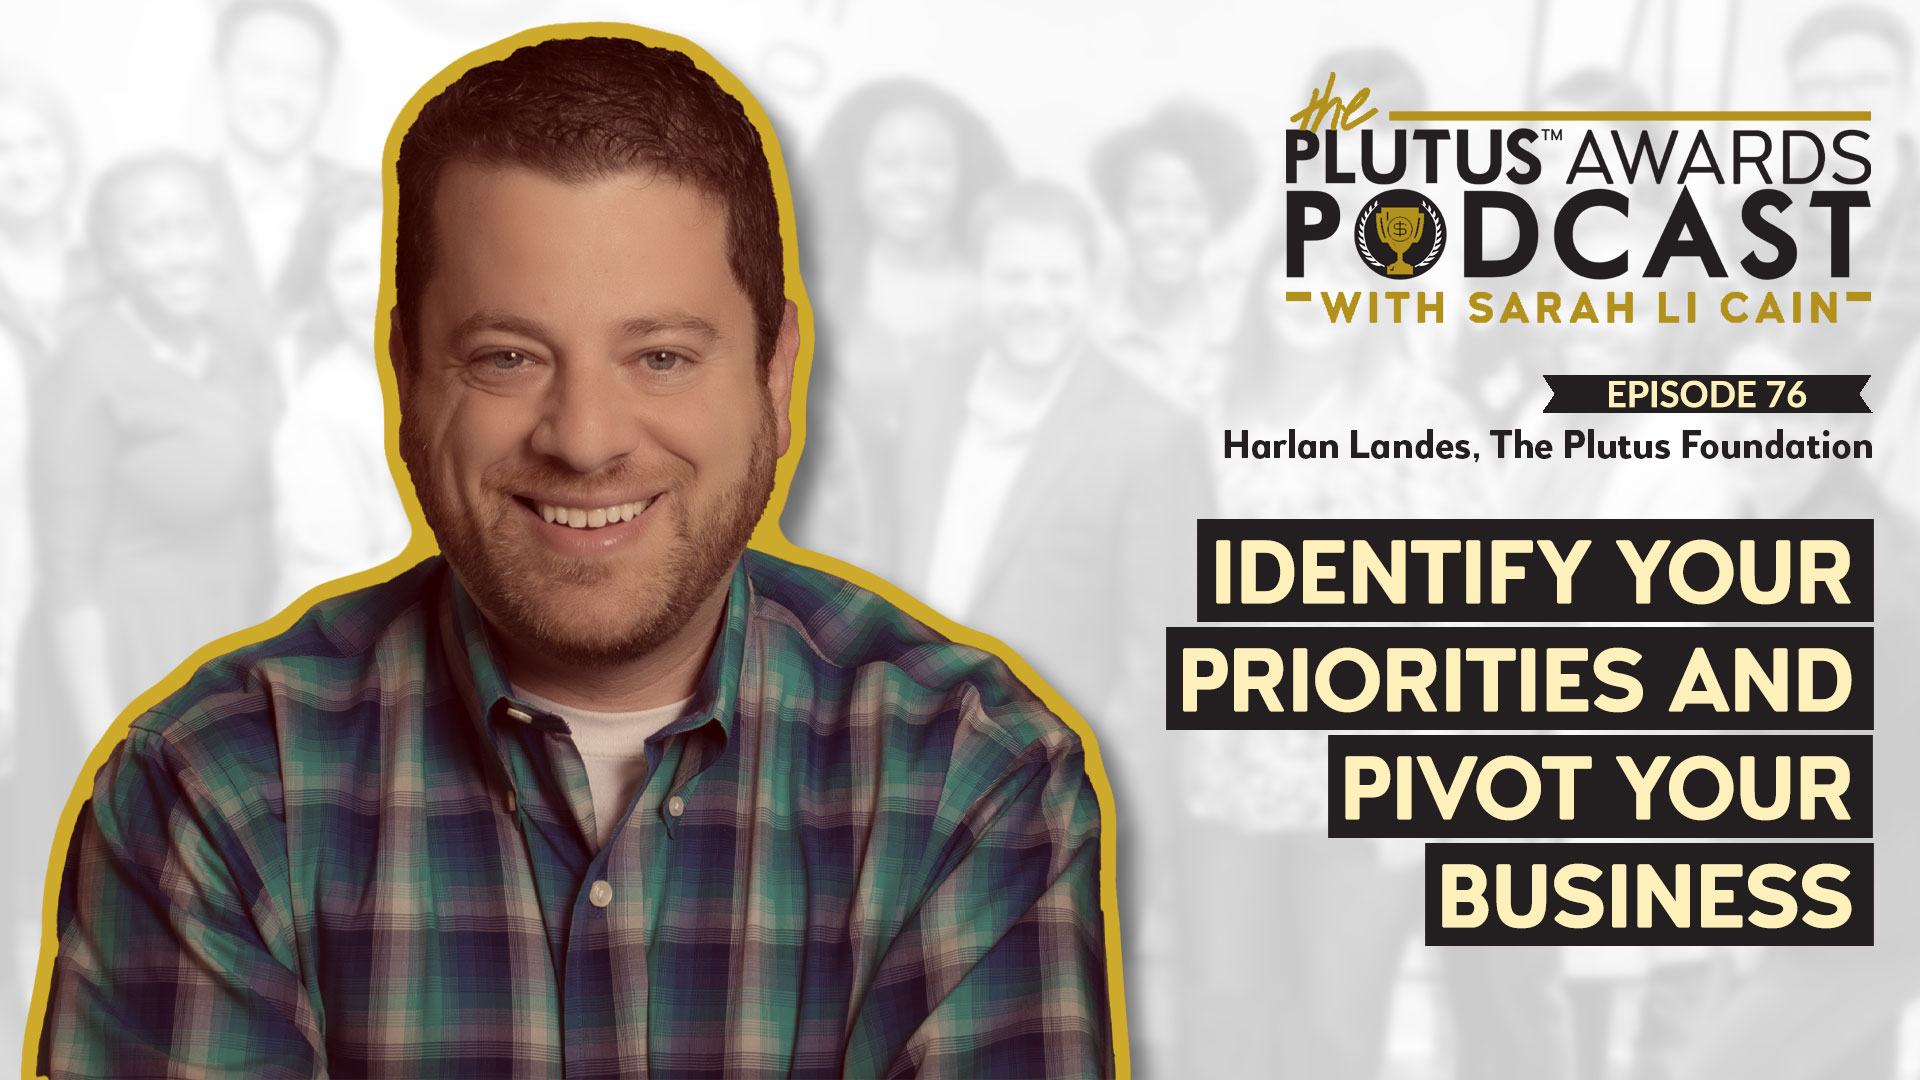 Plutus Awards Podcast - Harlan Landes Featured Image